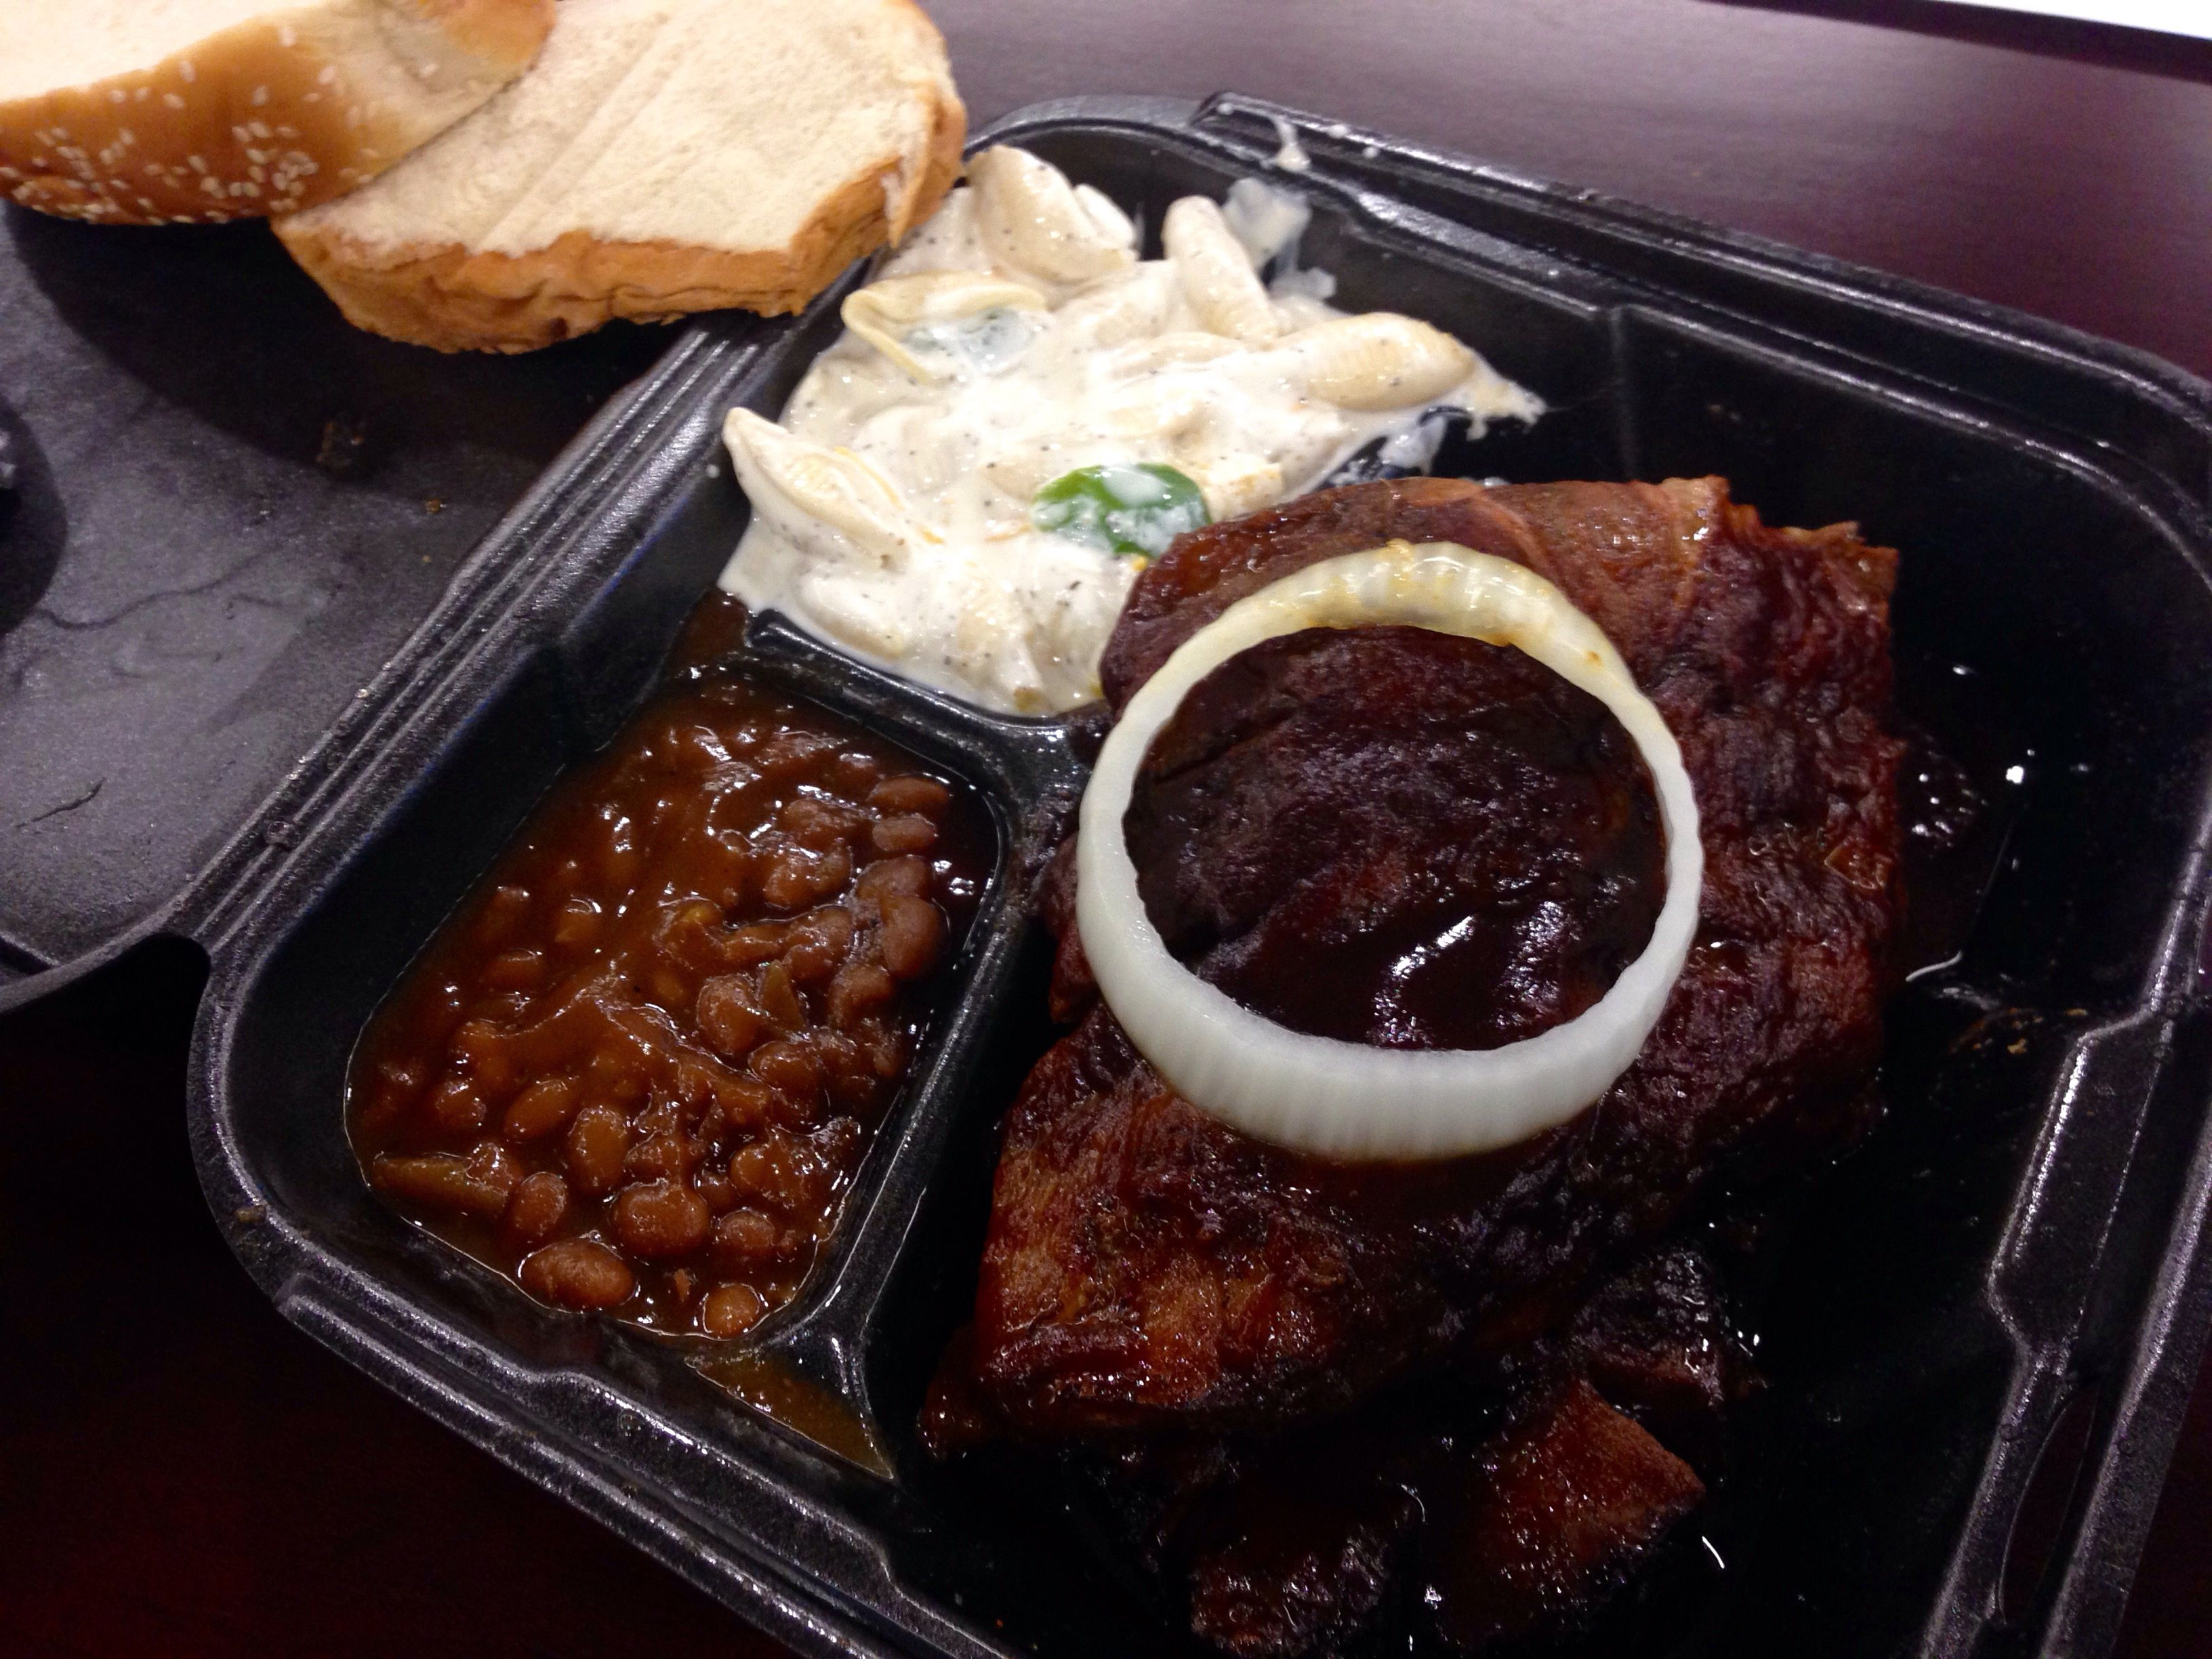 Baby Back Ribs Brisket And Sides To Go From Bbq Grand Champions